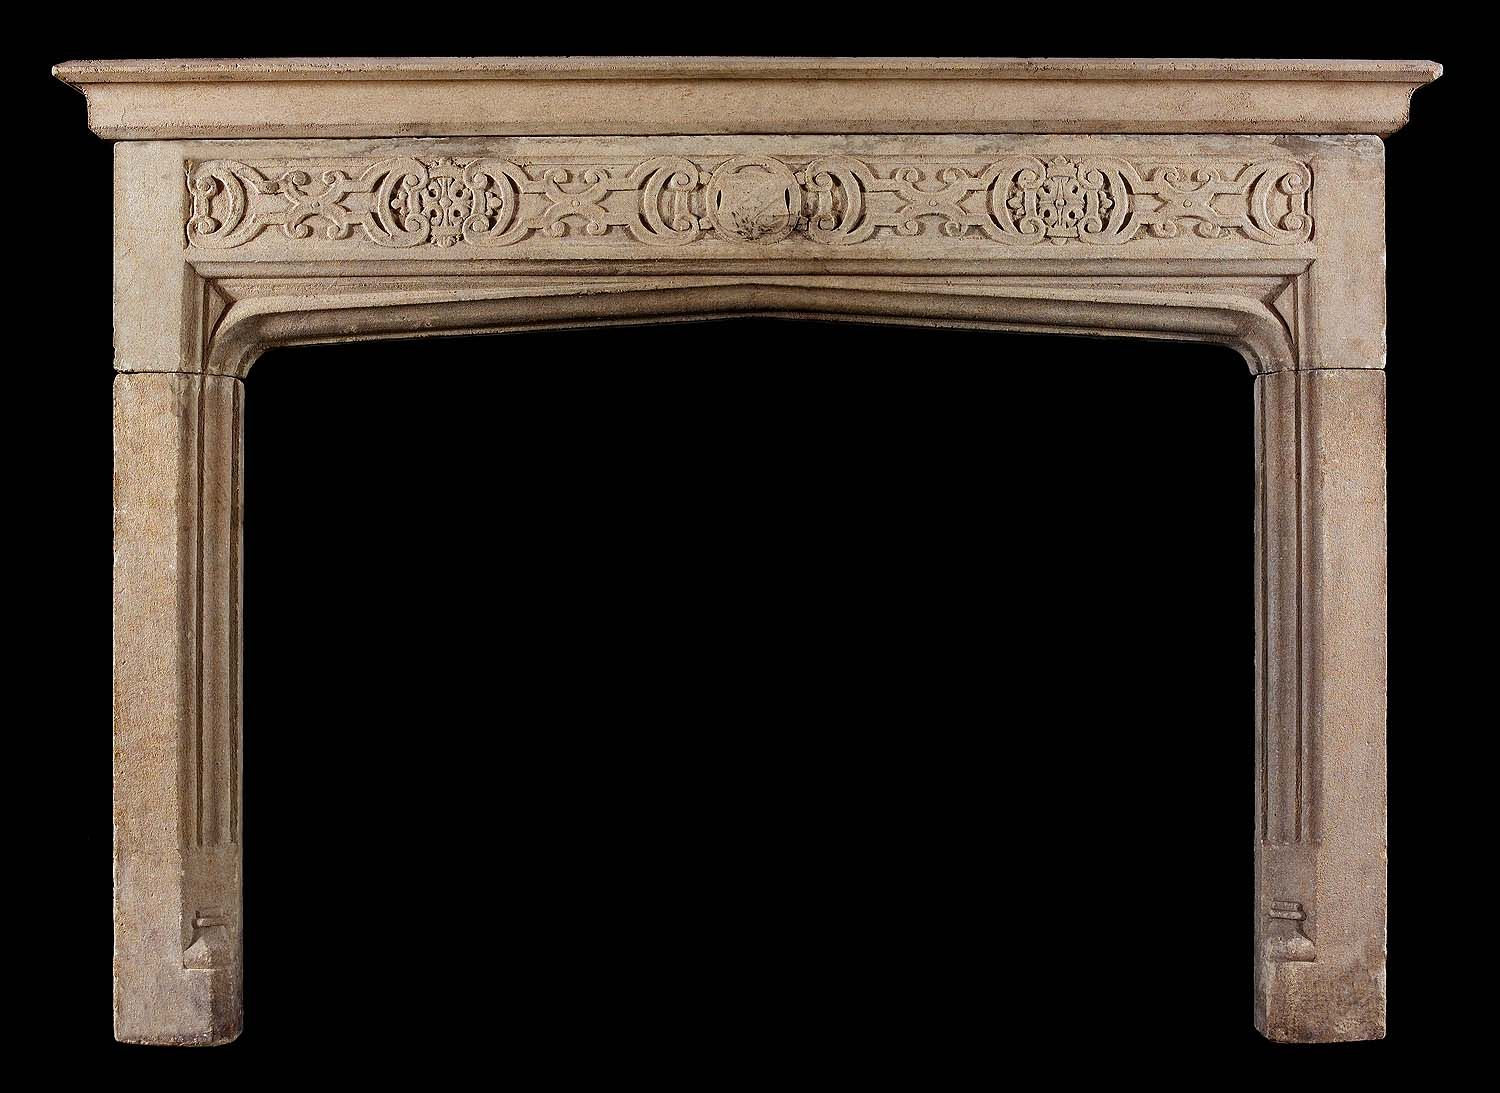 143 best fireplaces images on pinterest fireplace mantels